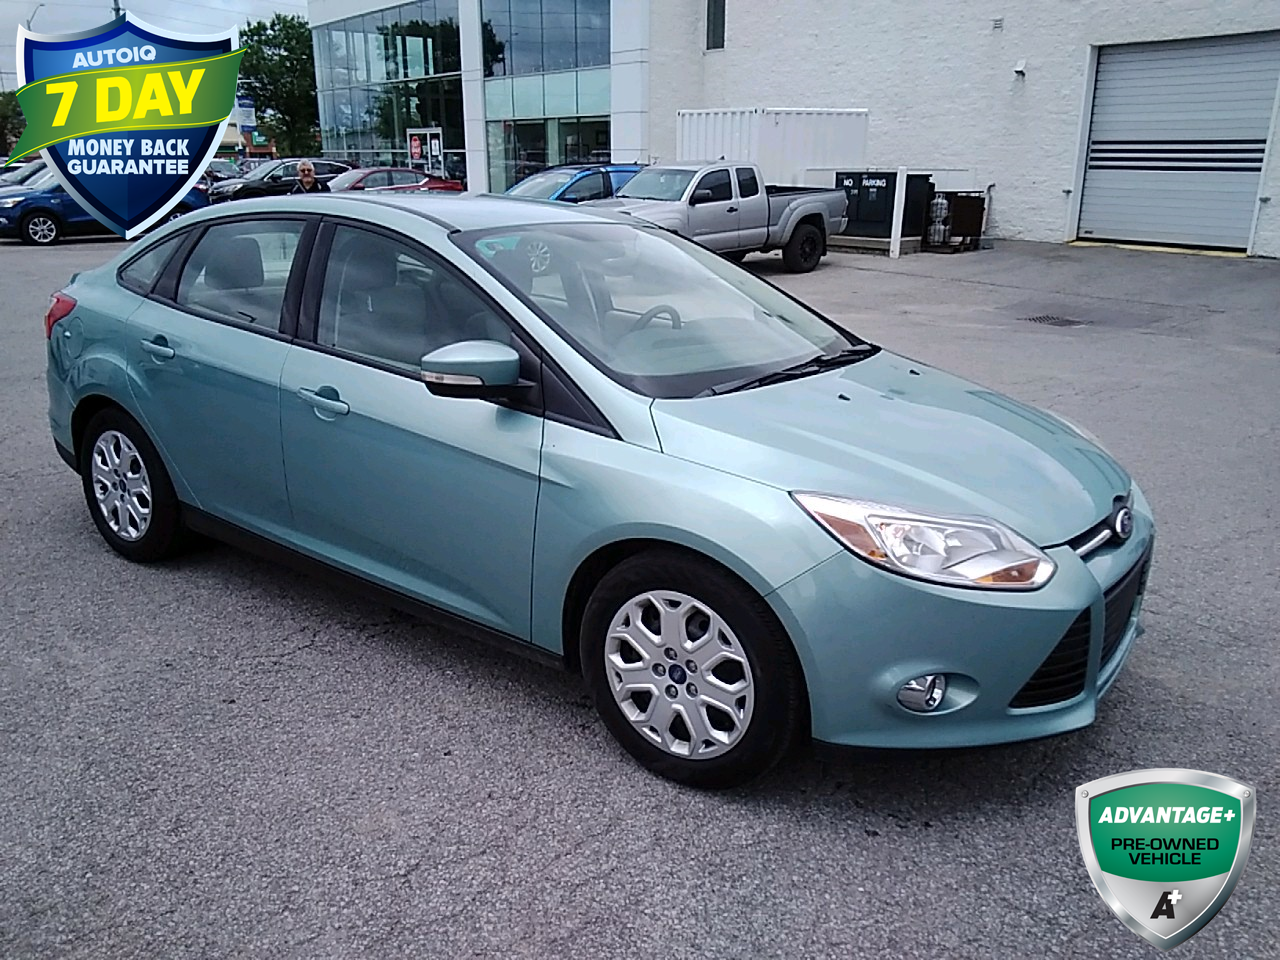 used 2012 Ford Focus car, priced at $7,348